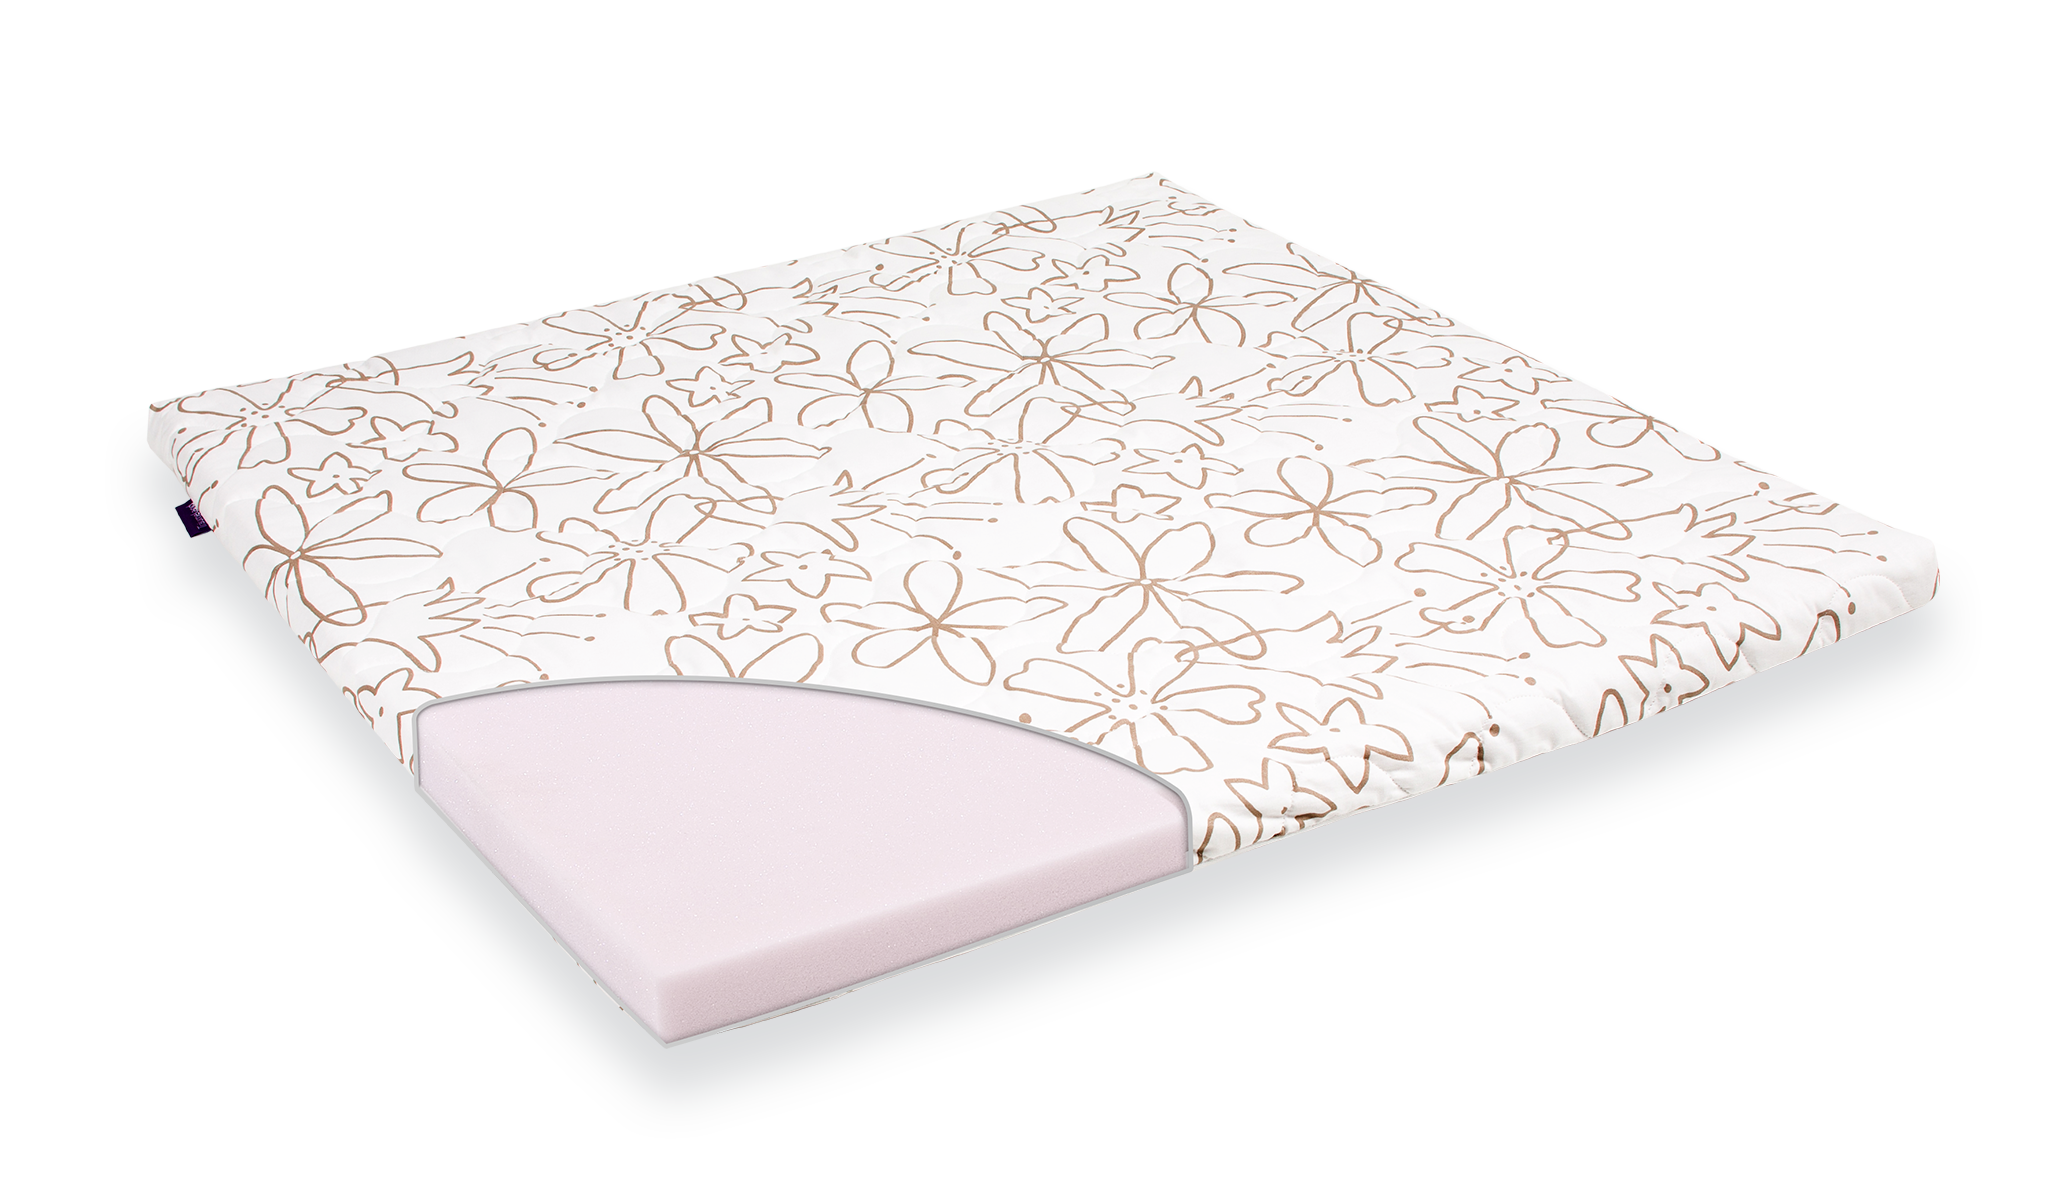 T070305 - BASIC mattress for playpen